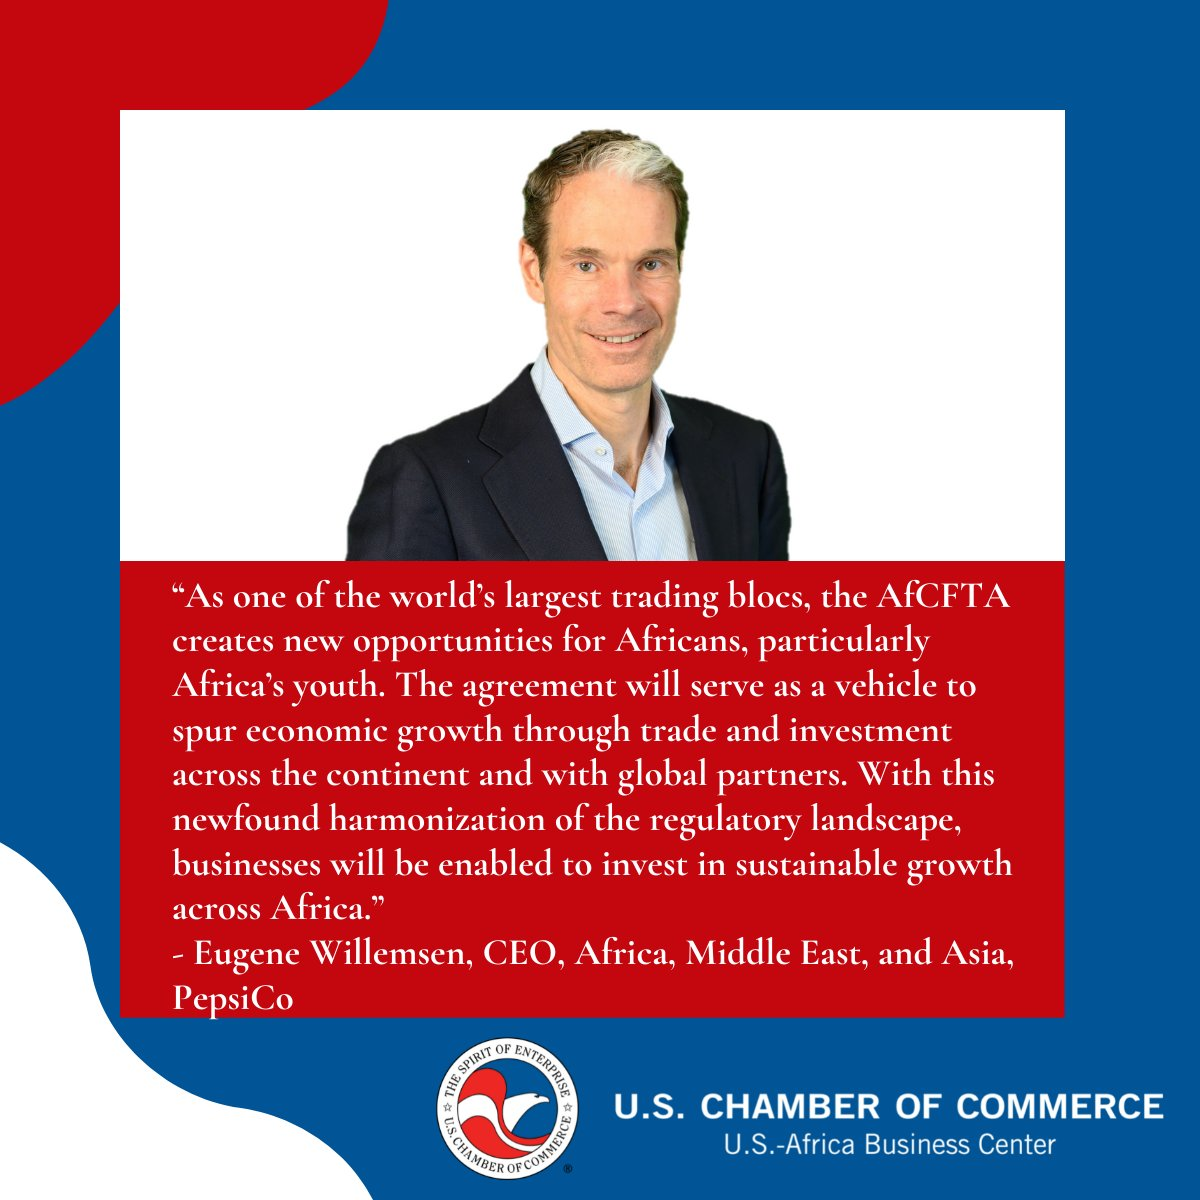 test Twitter Media - In a recent mid-year message to members of the @USChamberAfrica, Board Chair Eugene Willemsen, CEO for @PepsiCoAMESA, shared why he believes the AfCFTA will be an important vehicle for economic transformation, spurring trade and investment across Africa. https://t.co/aqh6I2aO7l